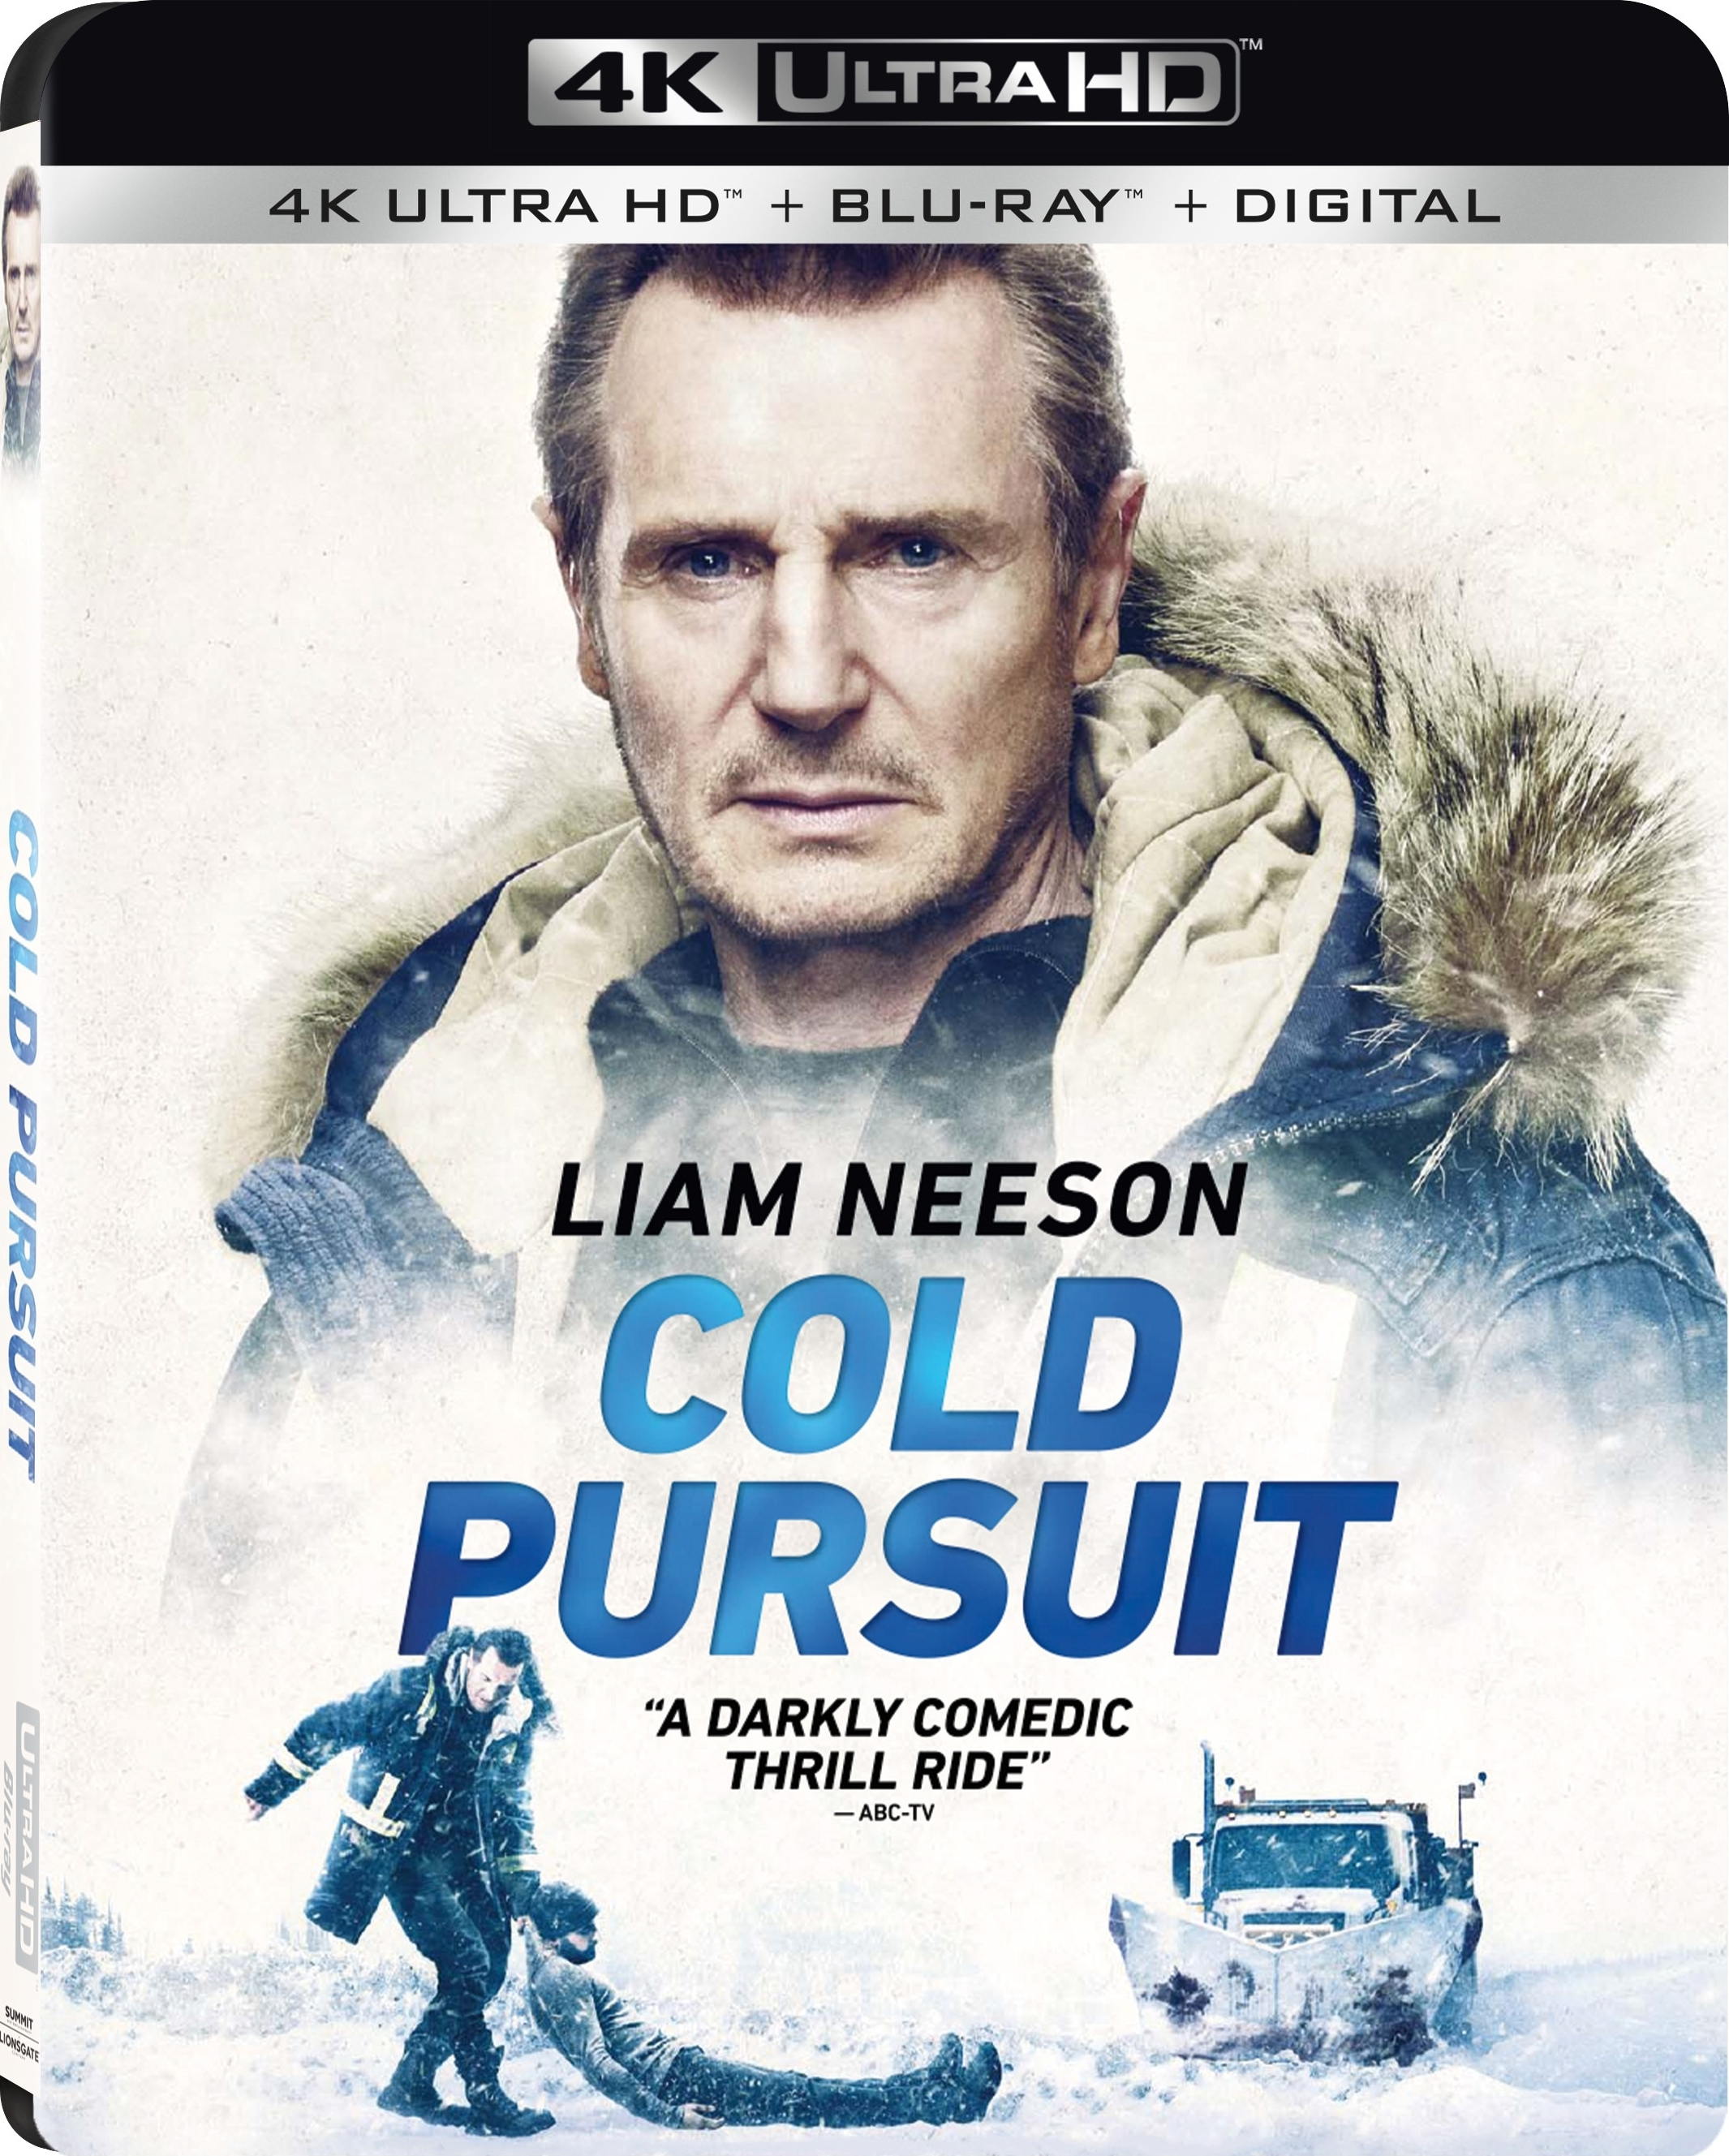 Cold Pursuit (4K Ultra HD Blu-ray)(Pre-order / May 14)